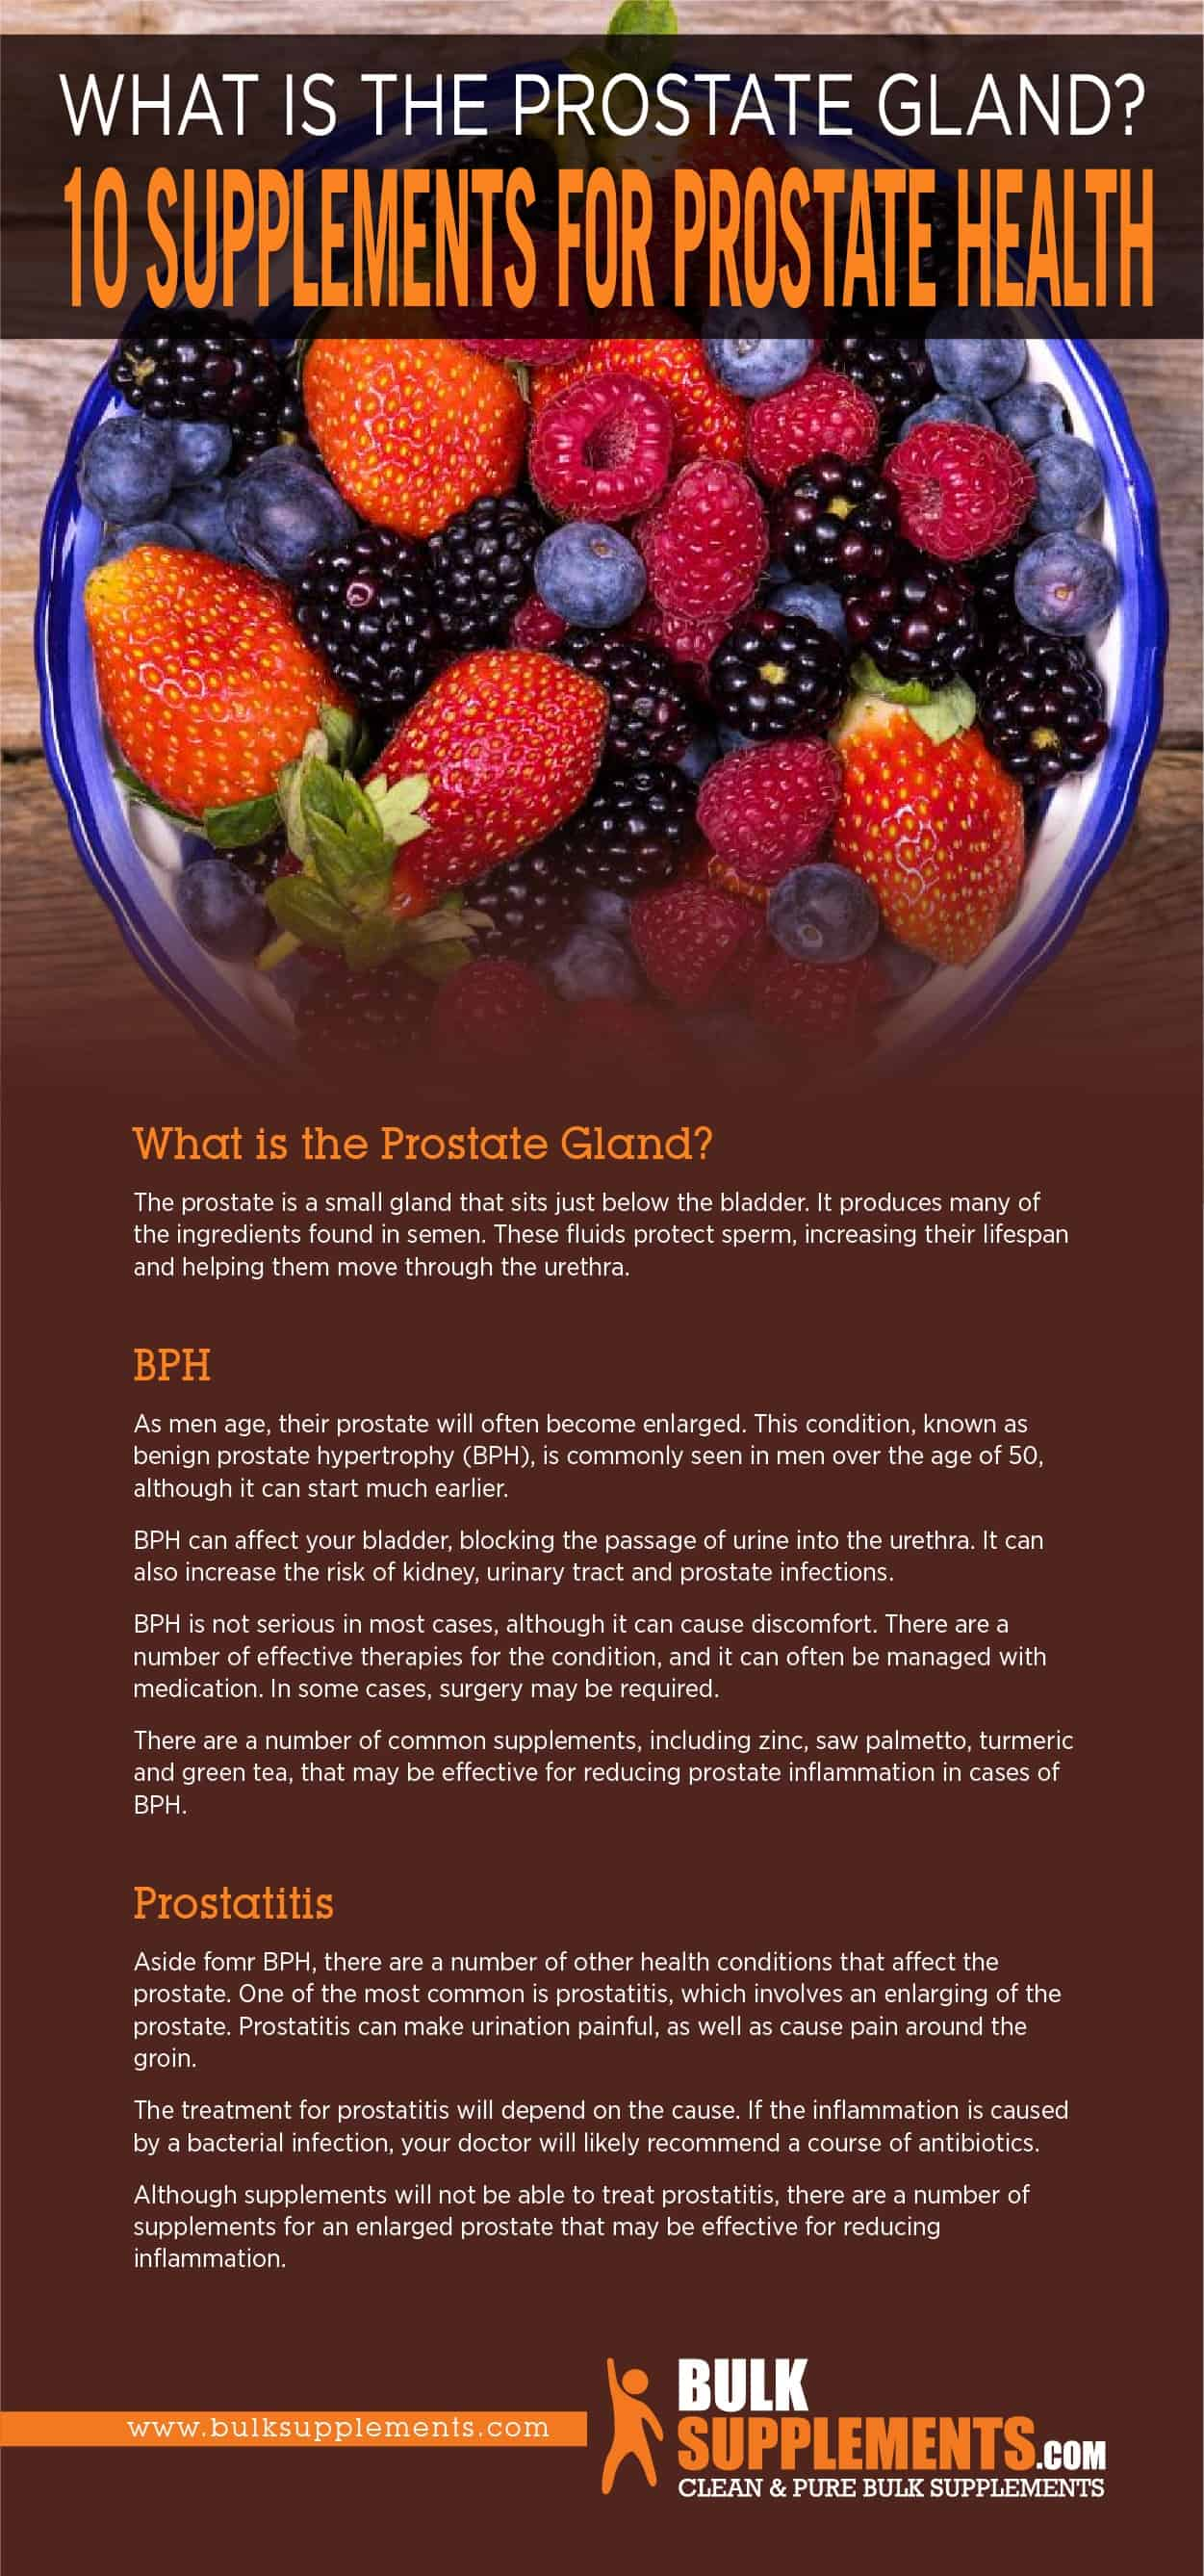 10 Supplements for Prostate Health